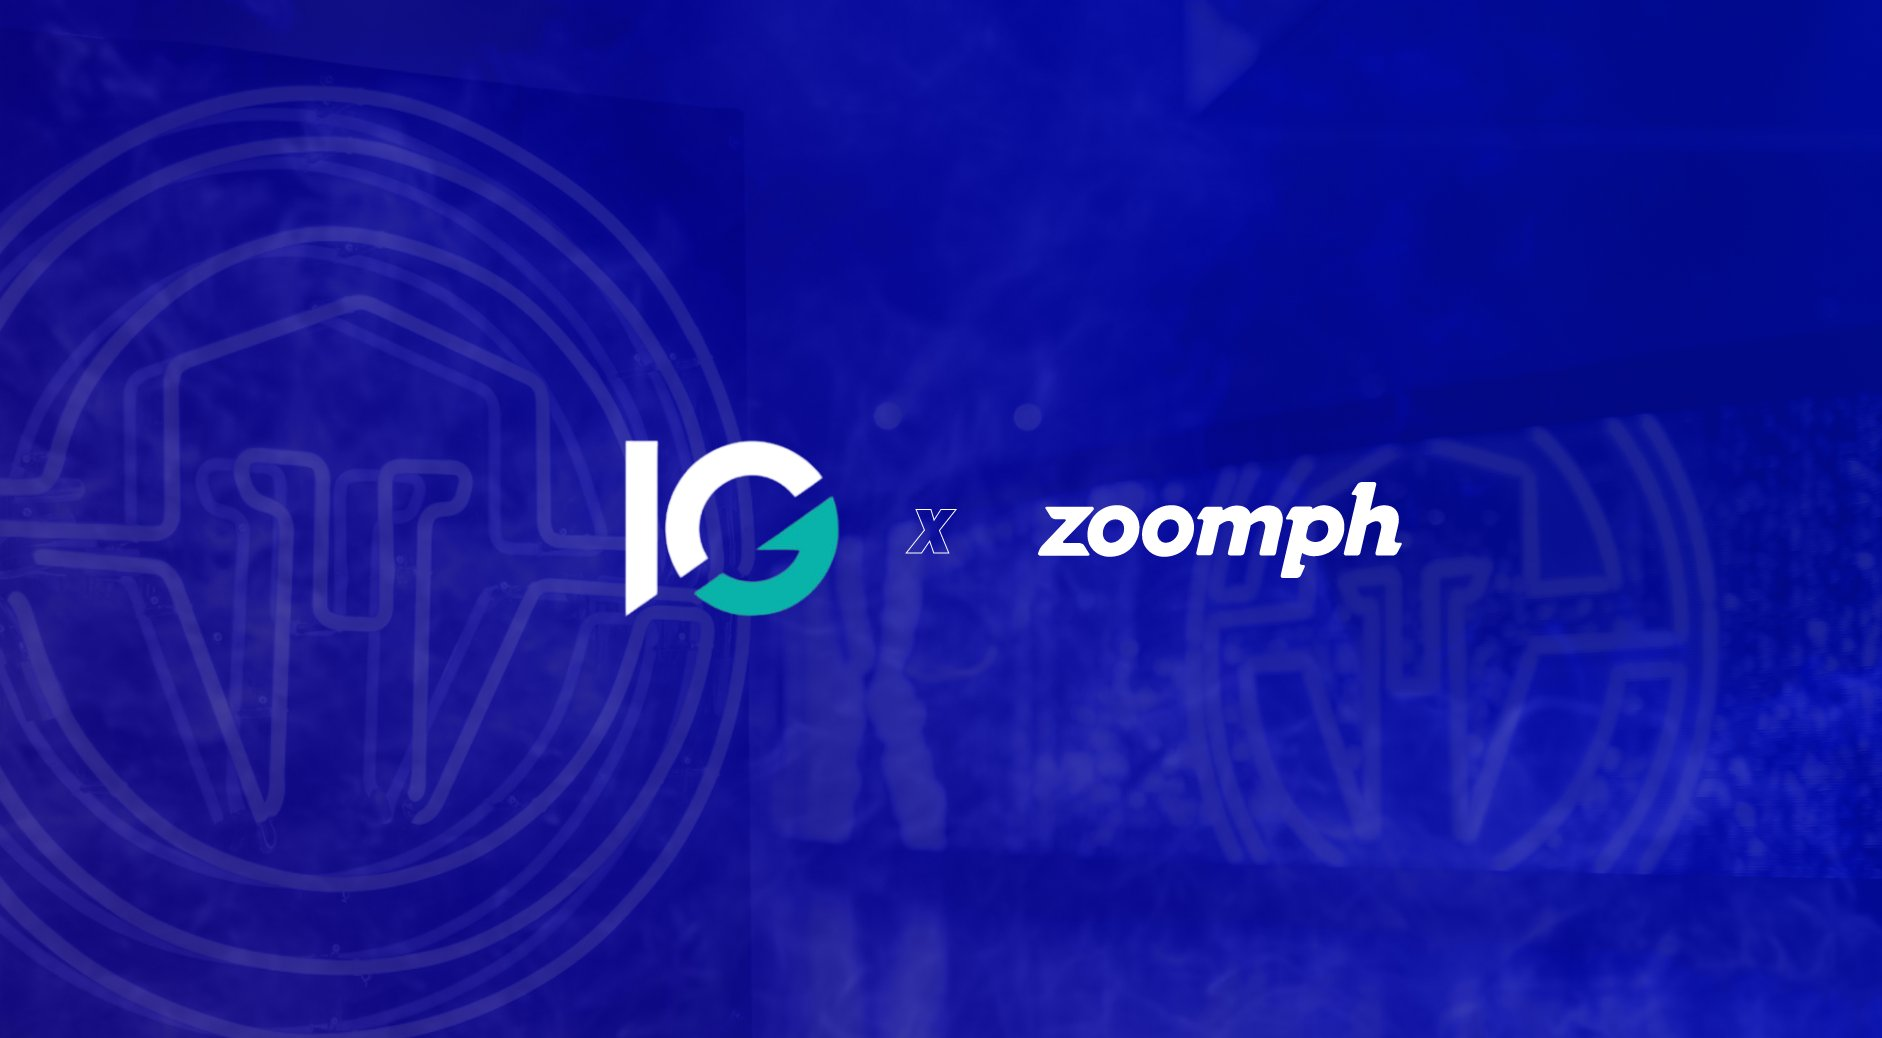 Immortals Gaming Club and Zoomph sign strategic partnership